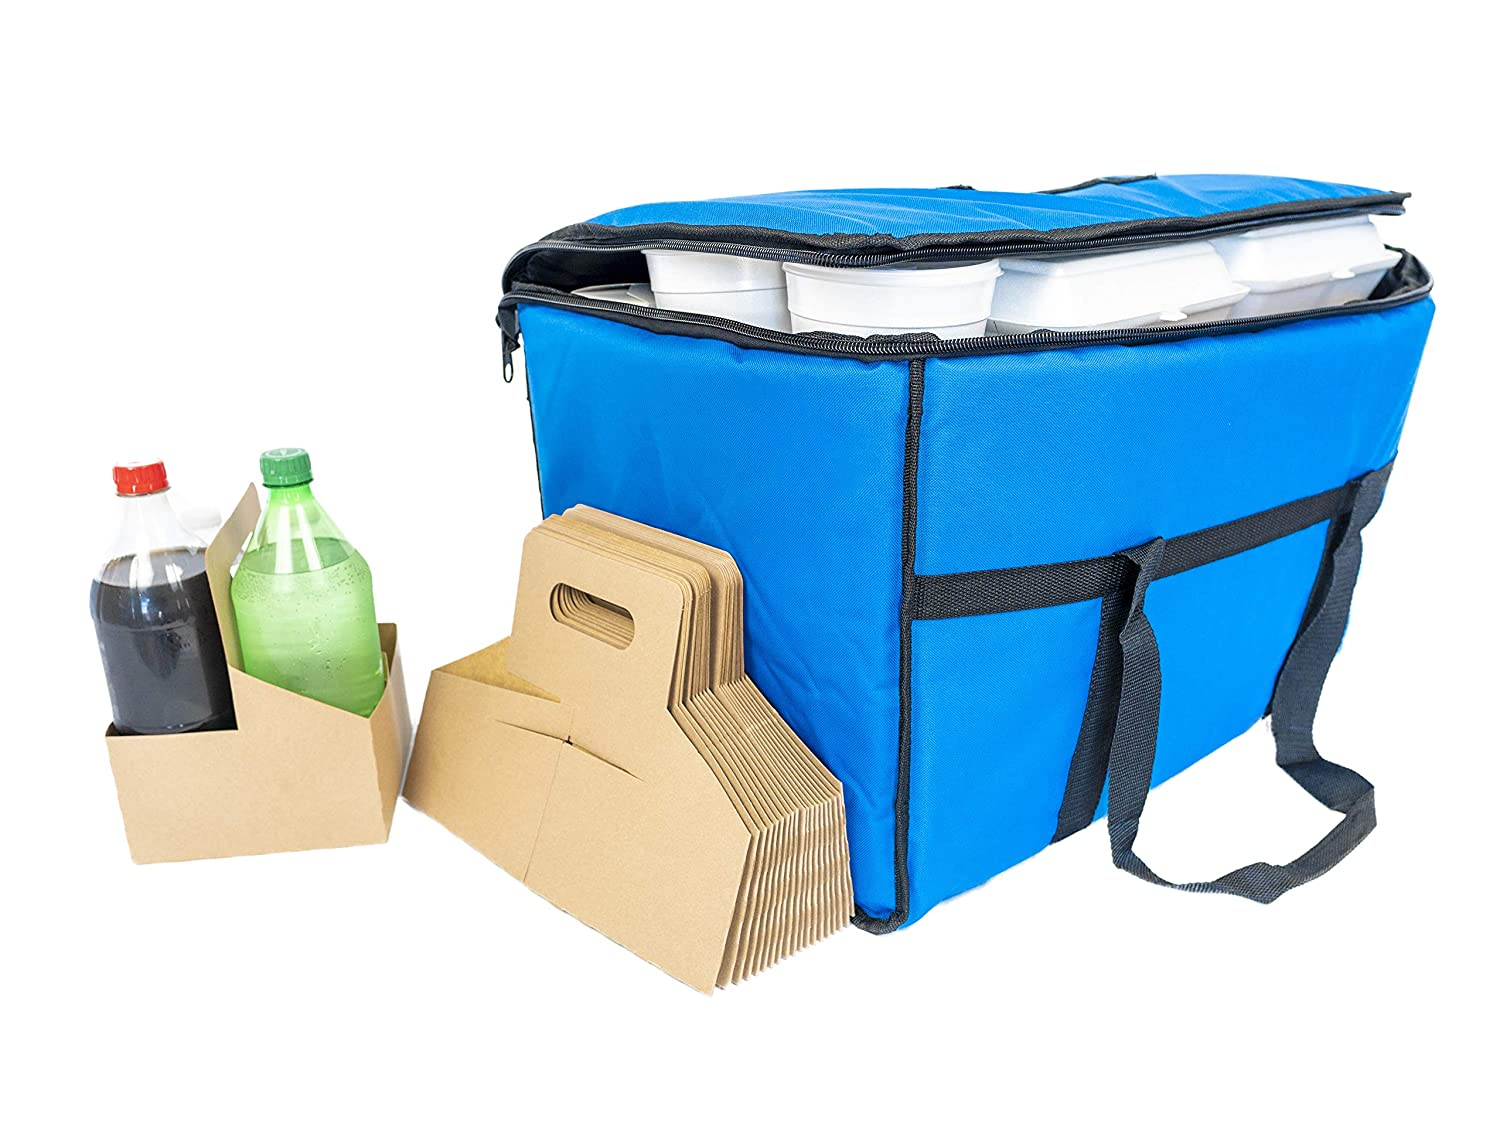 Big Bad Bag Insulated food delivery bag - Blue Delivery Bags for Hot Food - Great Design Holds More Food and Keeps Food Hotter -Comes with Bonus 20 Pack of A Disposable Drink Carrier for Delivery - Food Delivery Bag is 23